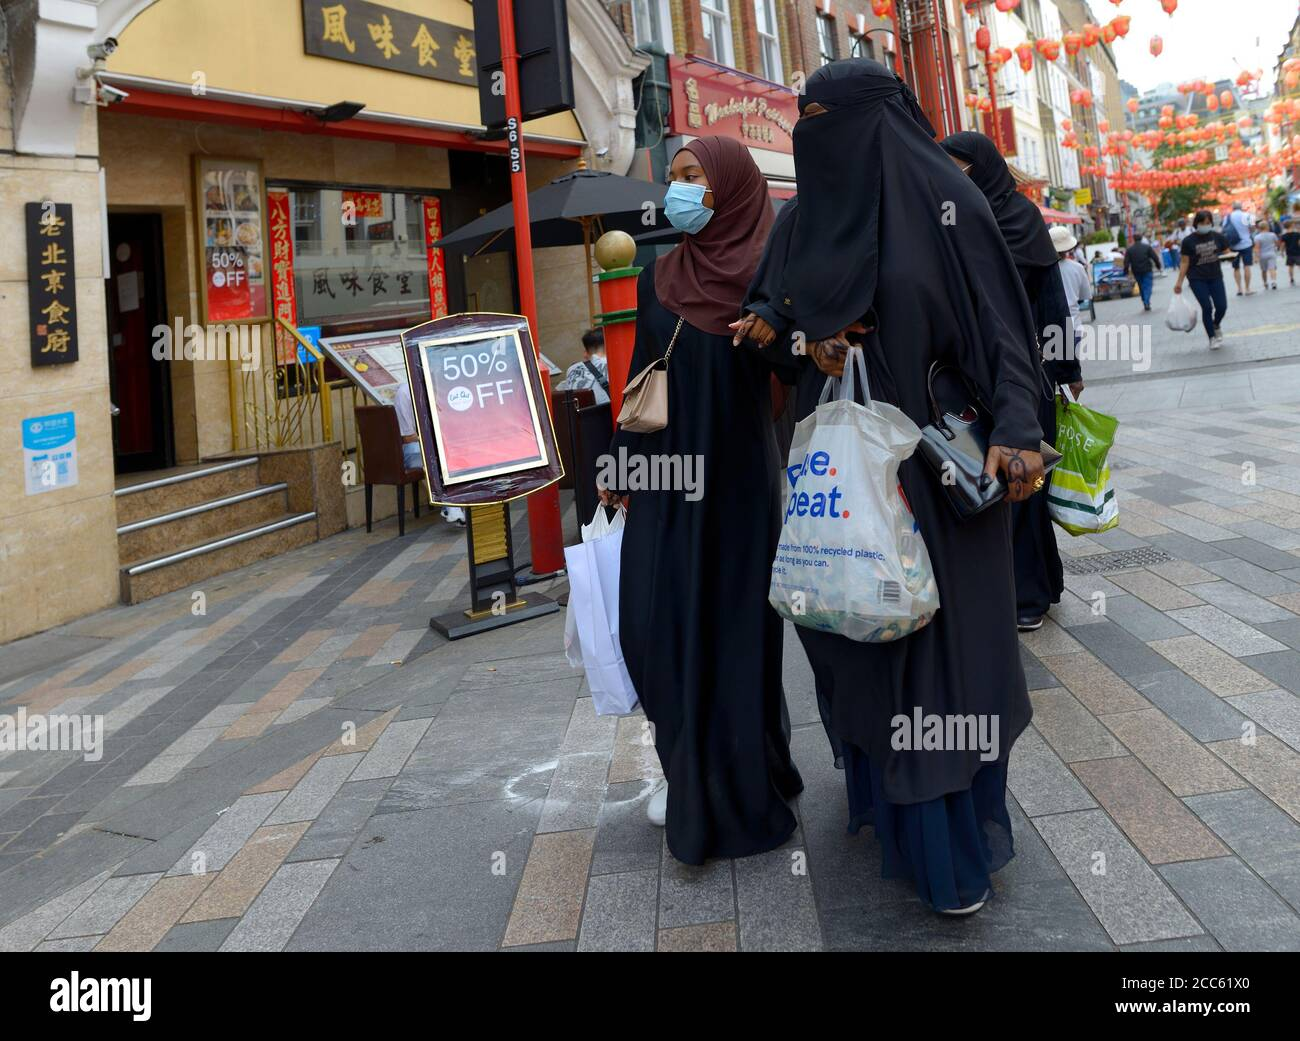 London, England, UK. Muslim women with face coverings in Gerrard Street, Chinatown, during the COVID pandemis, August 2020. Stock Photo